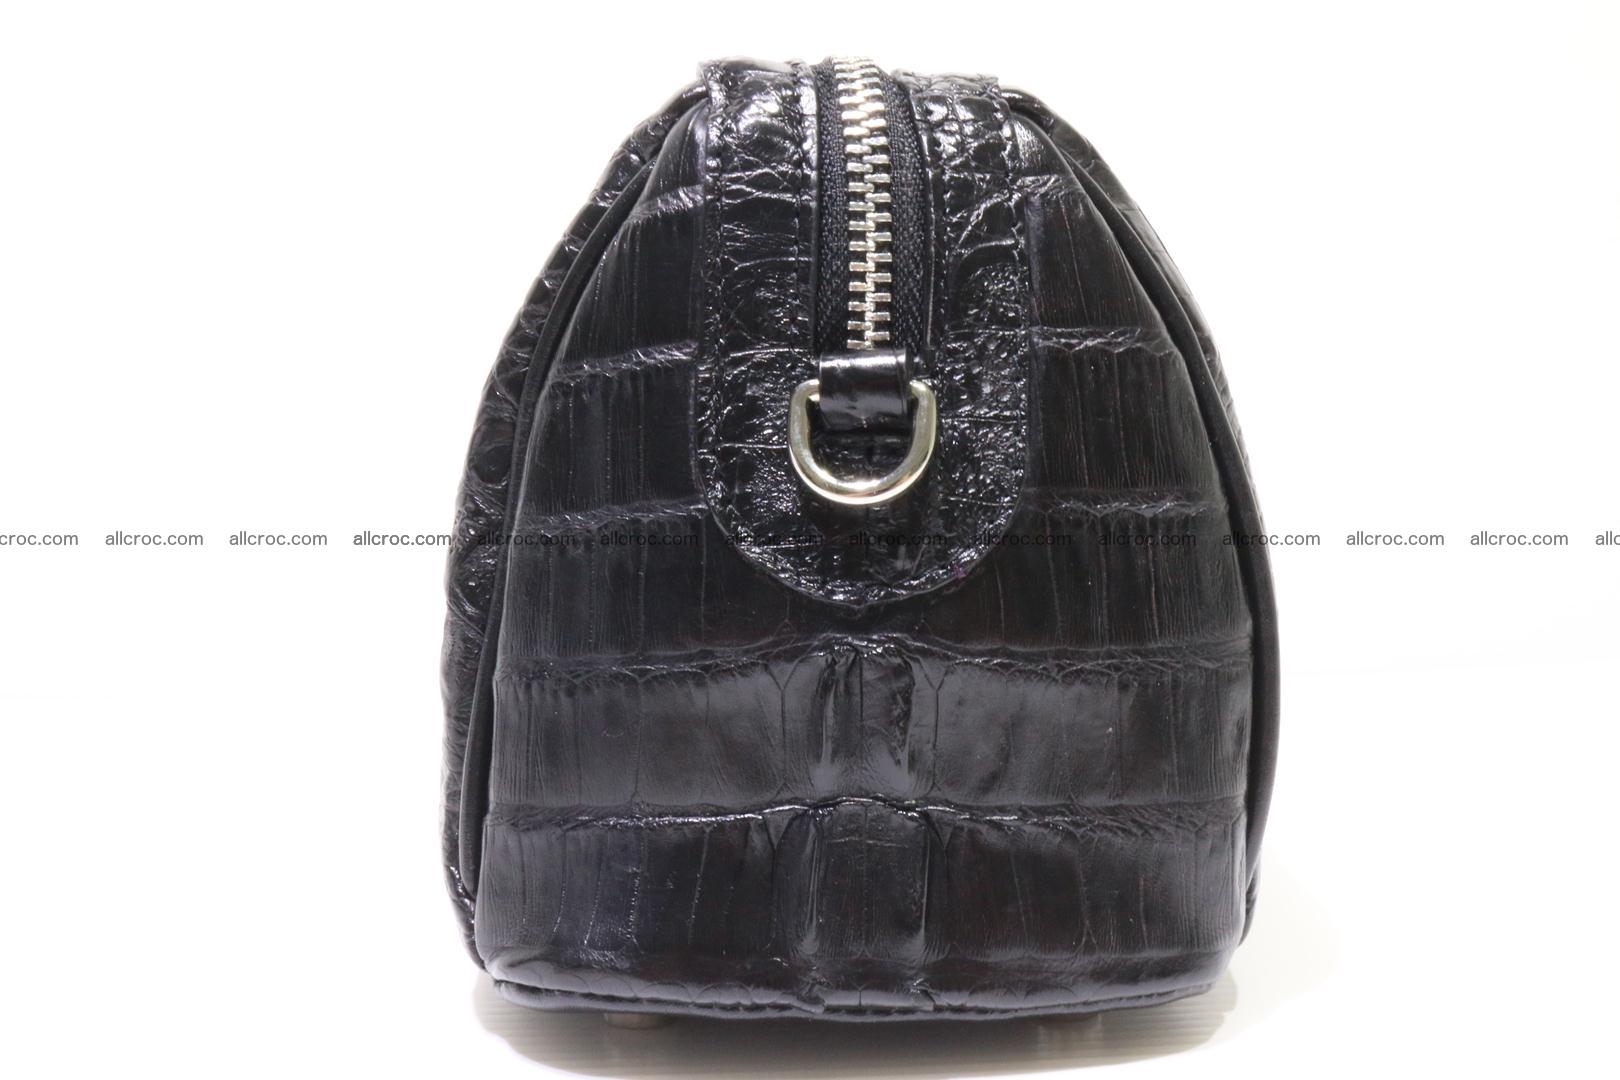 women's crocodile bag 042 Foto 4